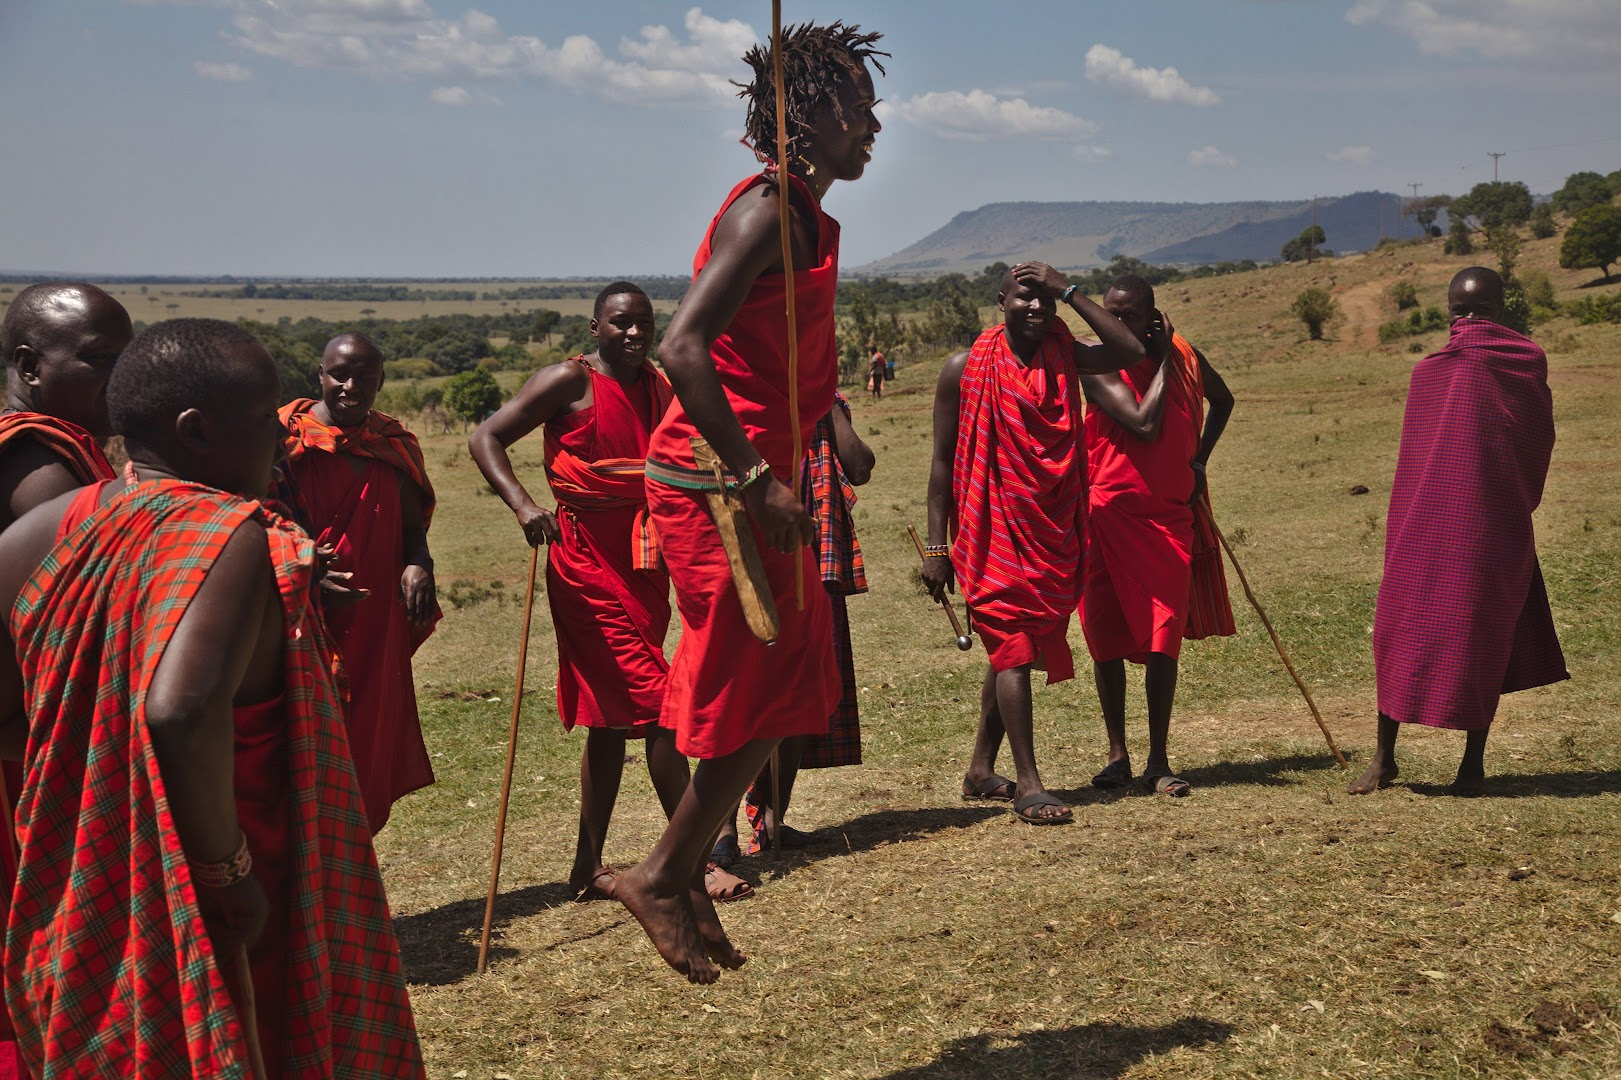 Traditional Masai jumping-dance